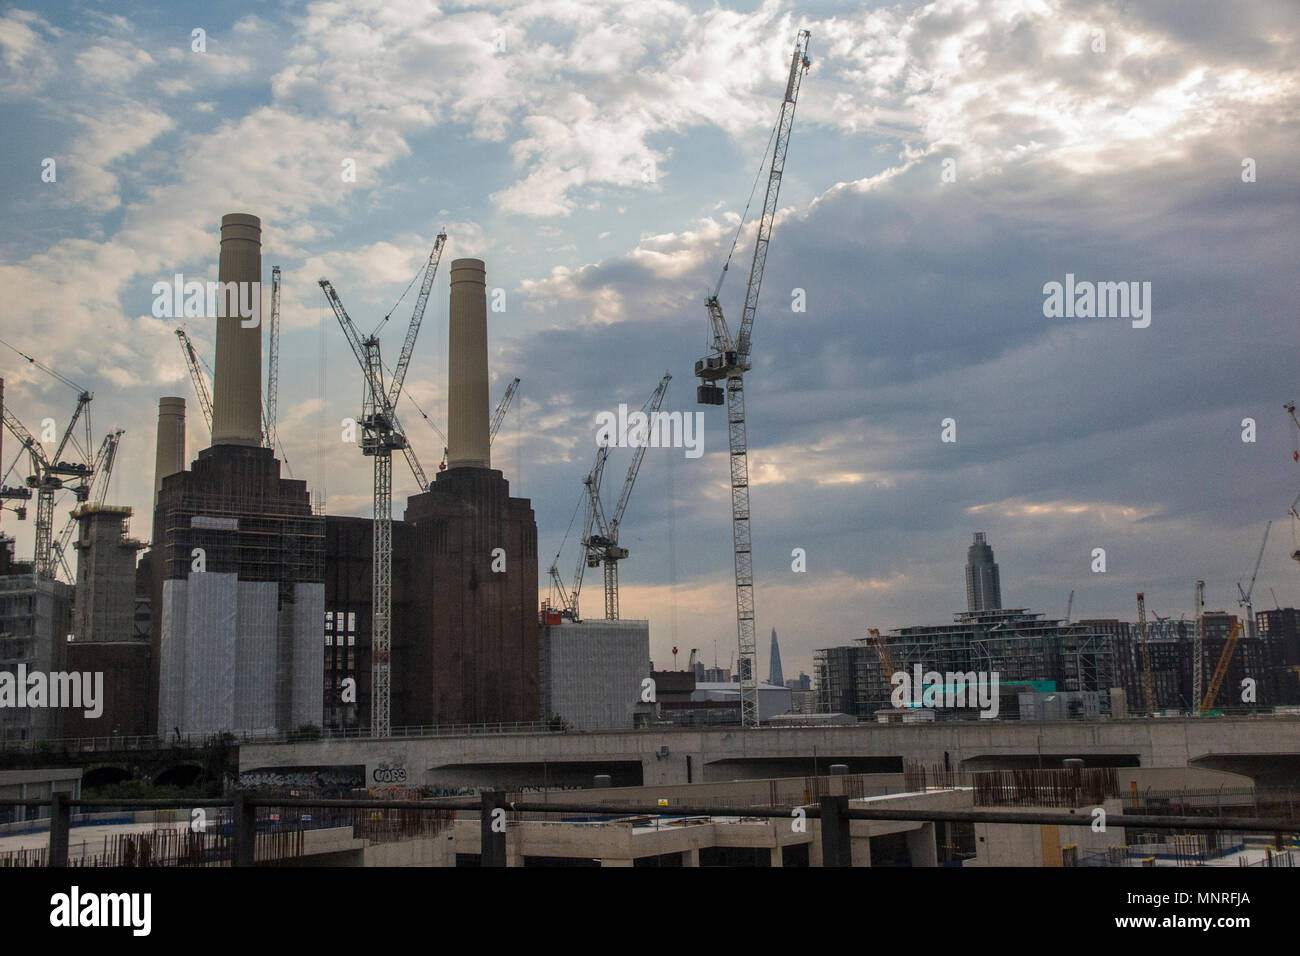 Early morning at Battersea Power Station - Stock Image